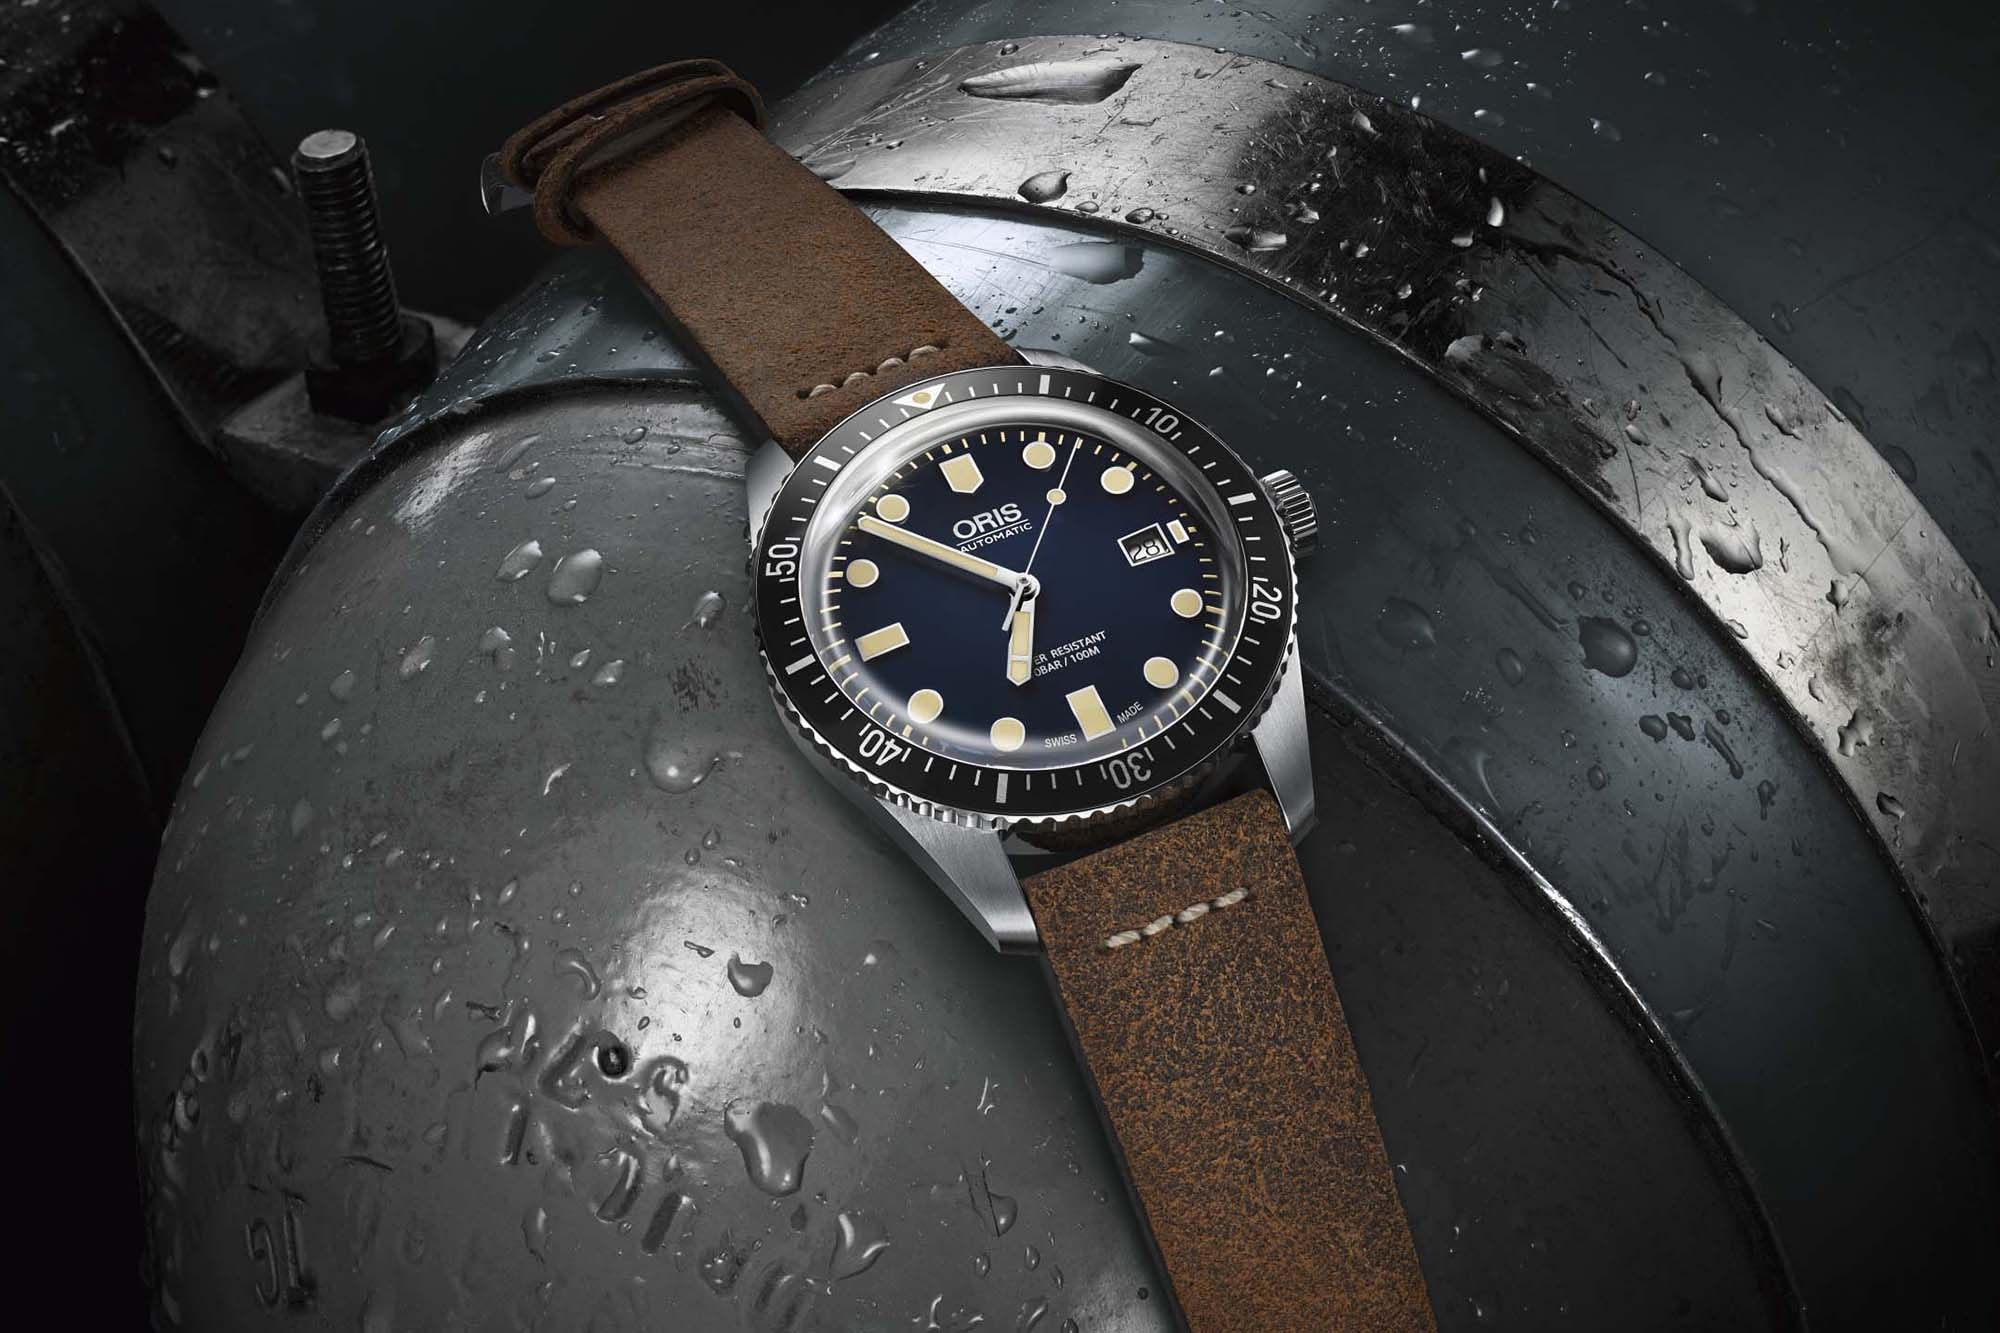 Oris Divers Sixty-Five leather strap Introducing: Three New Divers From Oris – One Heritage Update, And Two Limited Editions Supporting Good Causes Introducing: Three New Divers From Oris – One Heritage Update, And Two Limited Editions Supporting Good Causes 2